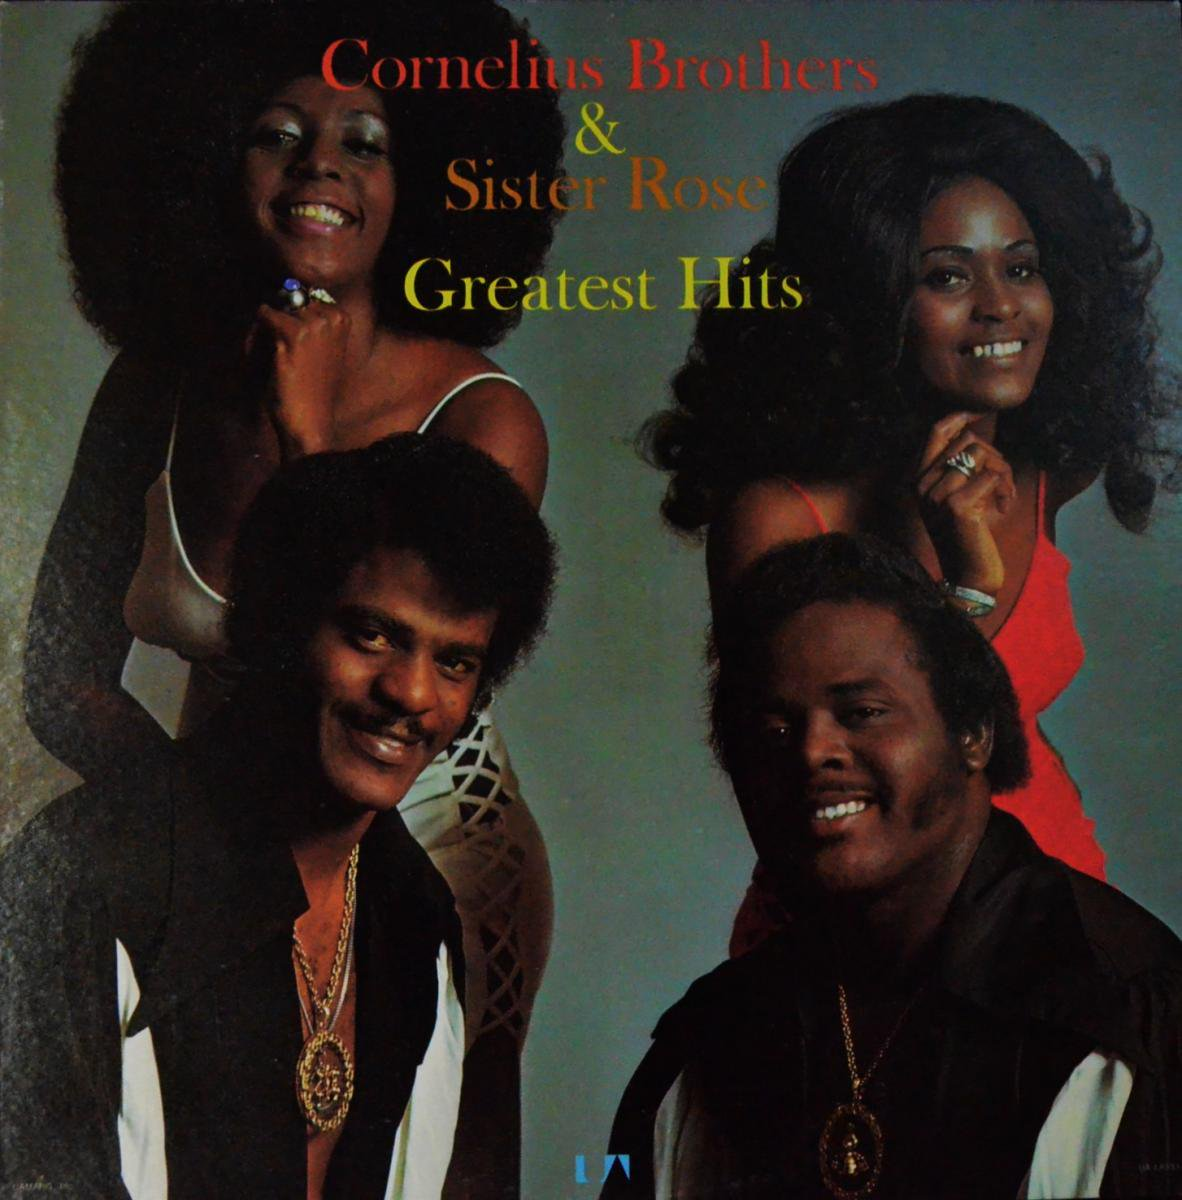 CORNELIUS BROTHERS & SISTER ROSE / GREATEST HITS (LP)